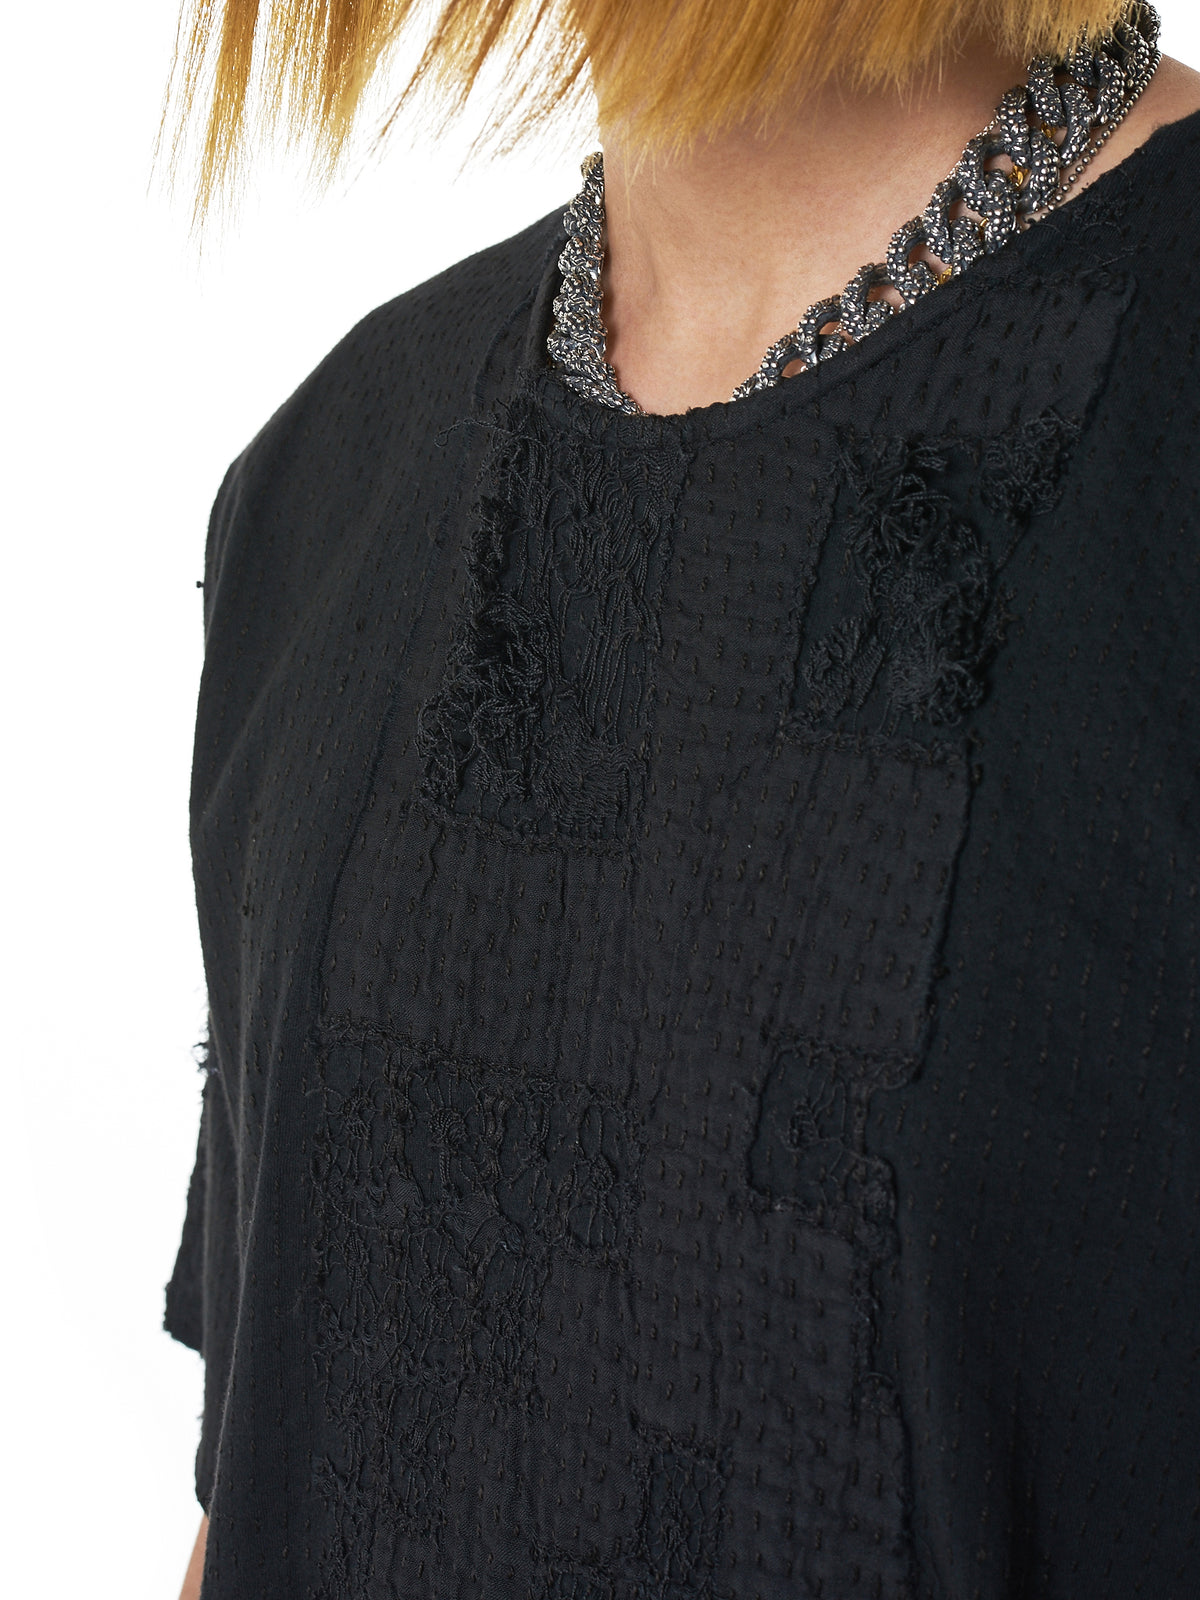 Lace Jersey Patchwork Tee (210151M-BLACK)